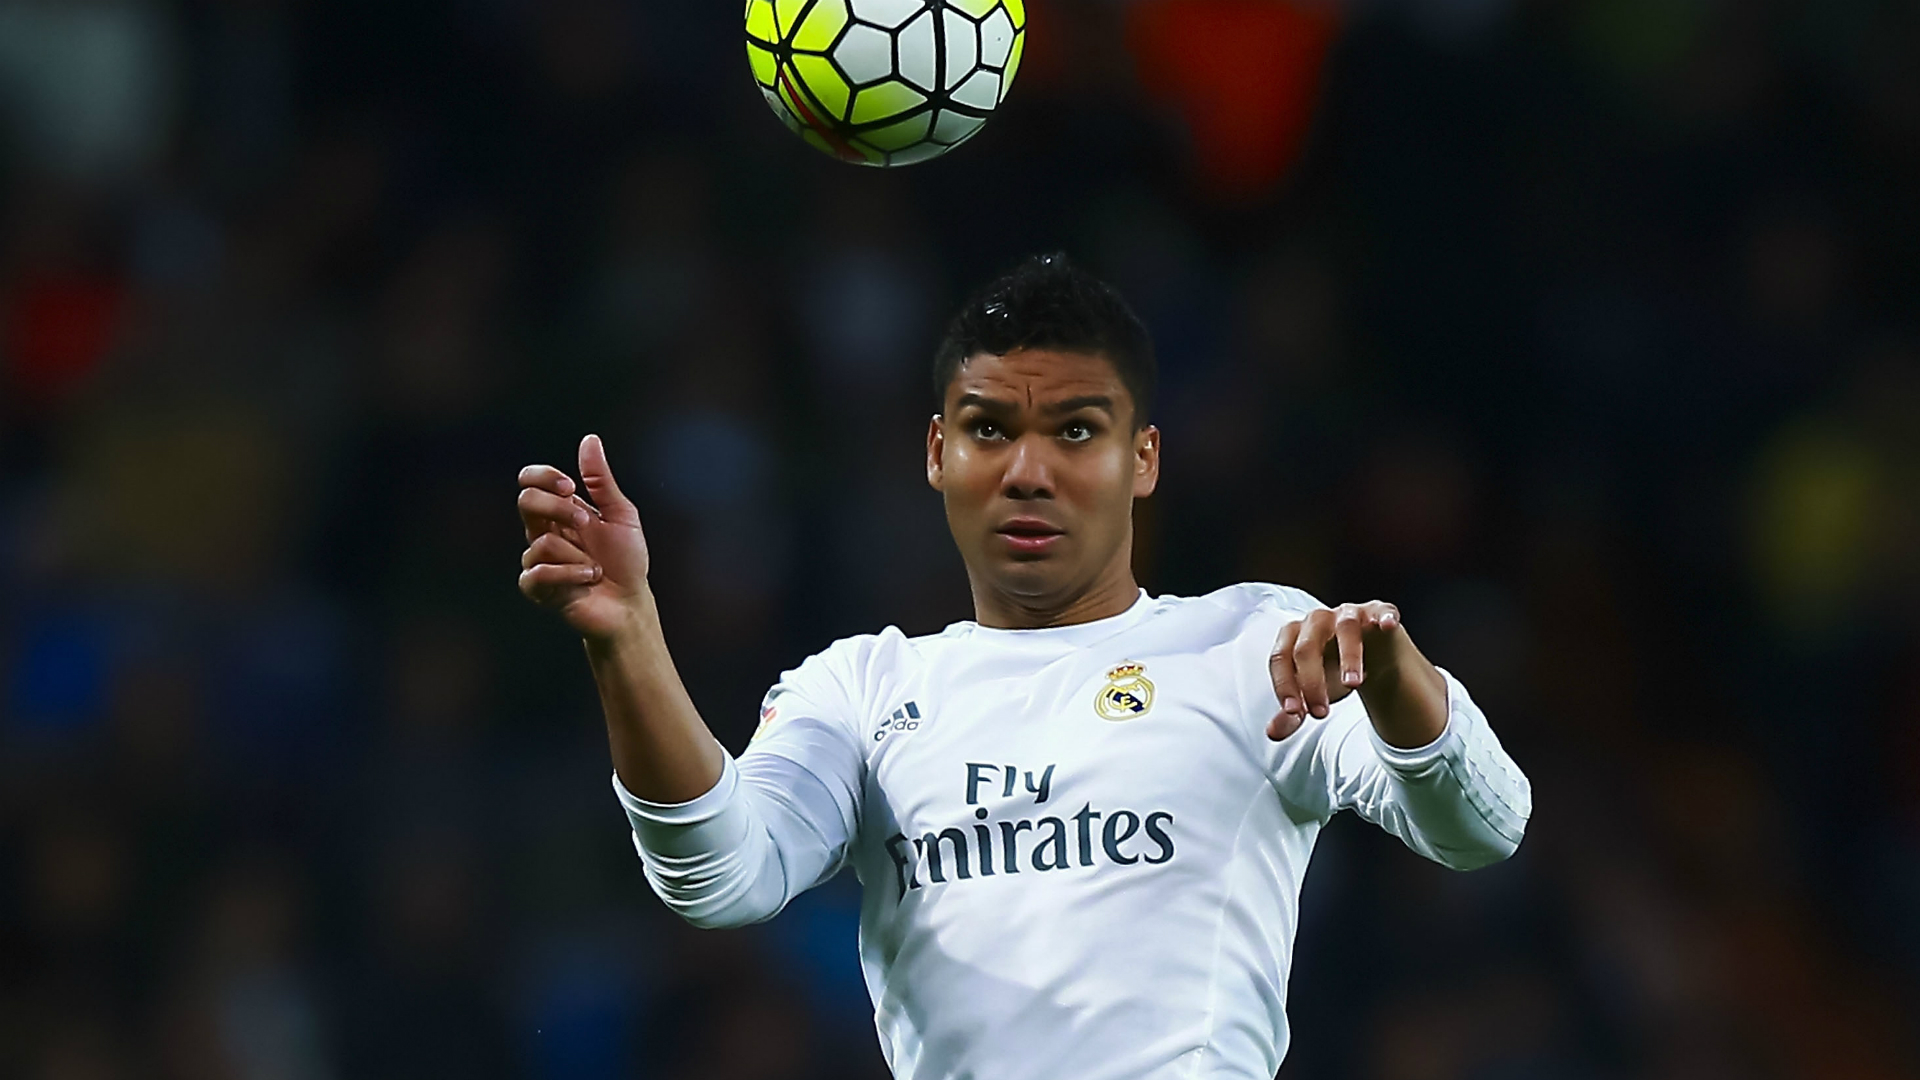 Casemiro could be as big a loss for Madrid as Messi for Barcelona